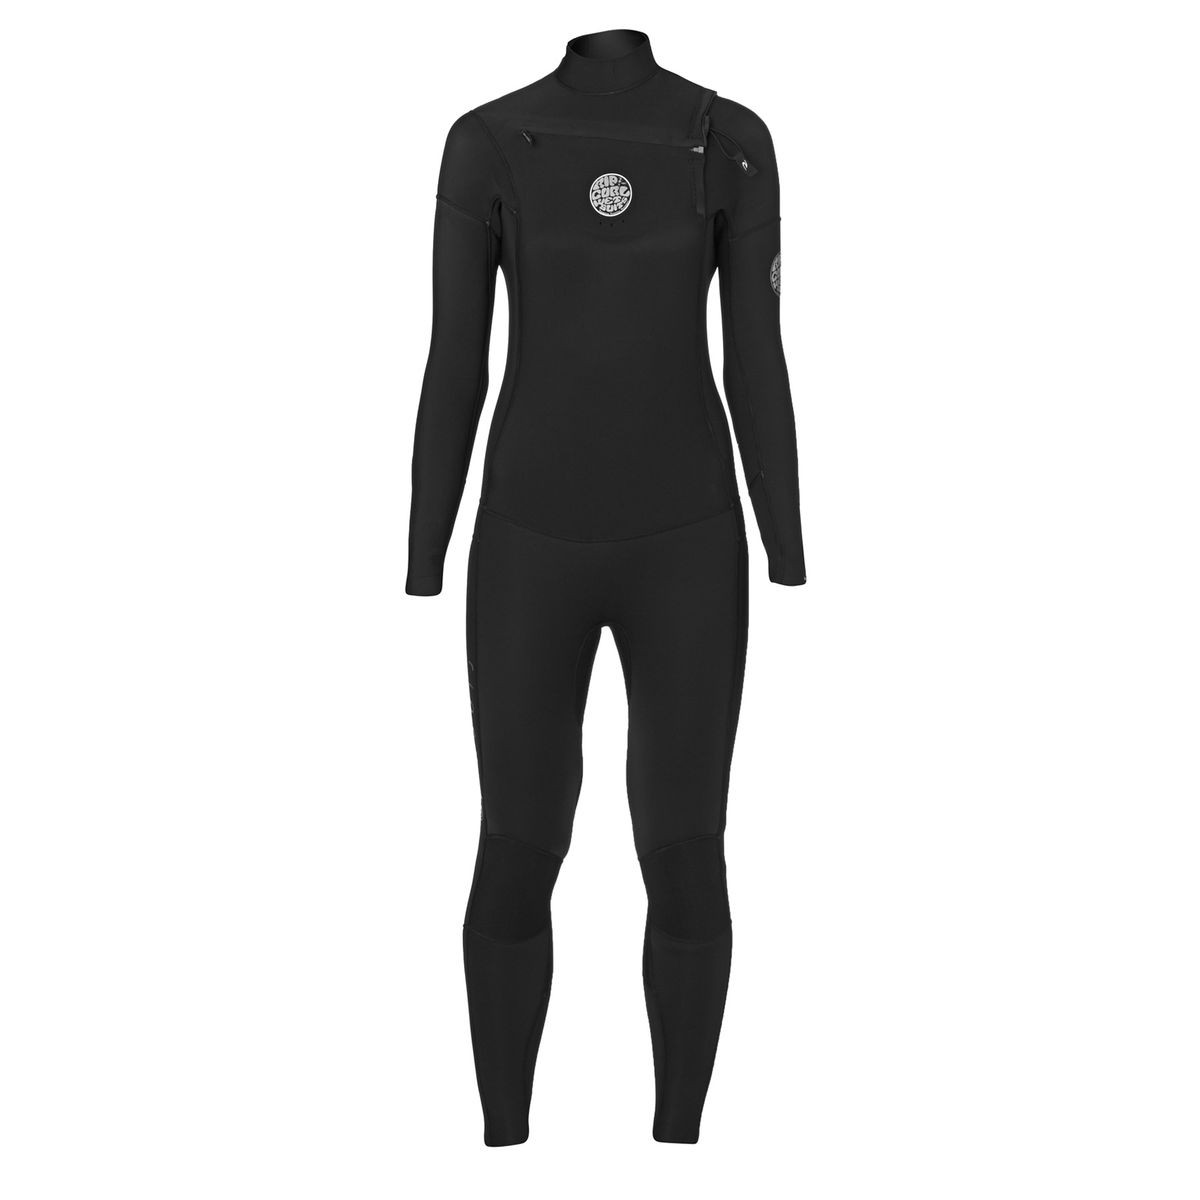 Rip Curl Womens Dawn Patrol 5/3mm 2017 Chest Zip Wetsuit - Black